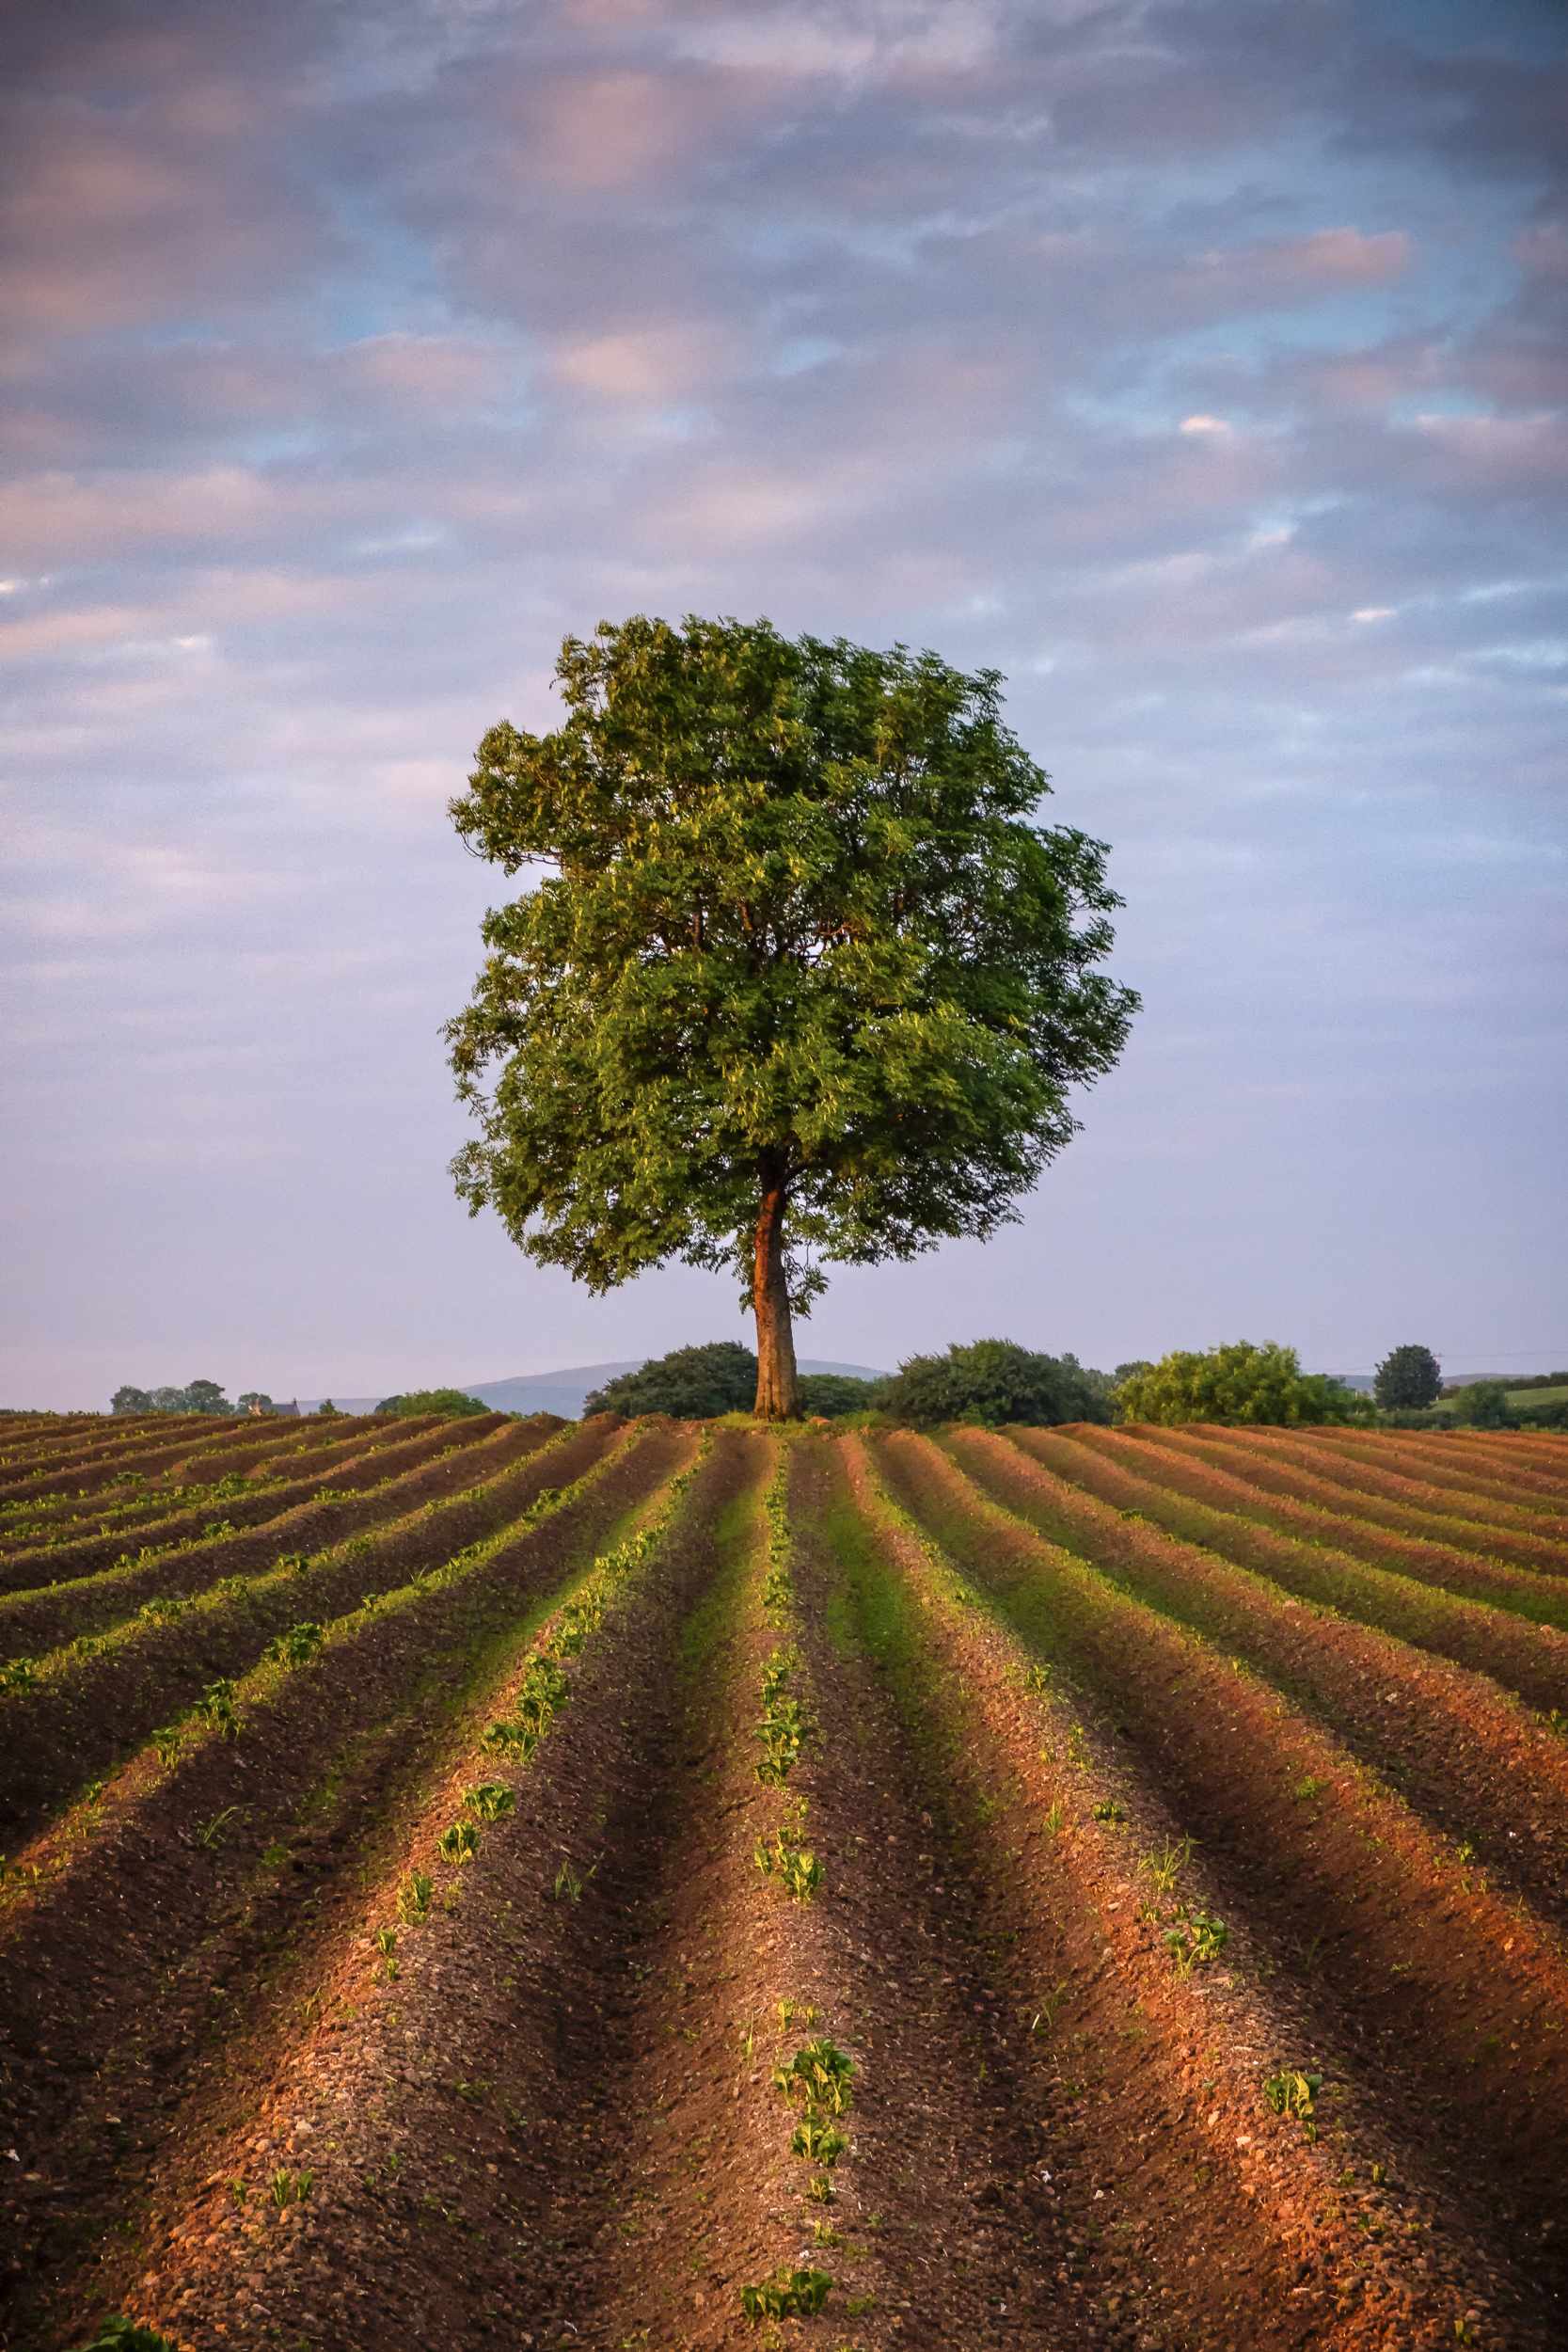 The tree and the potato field